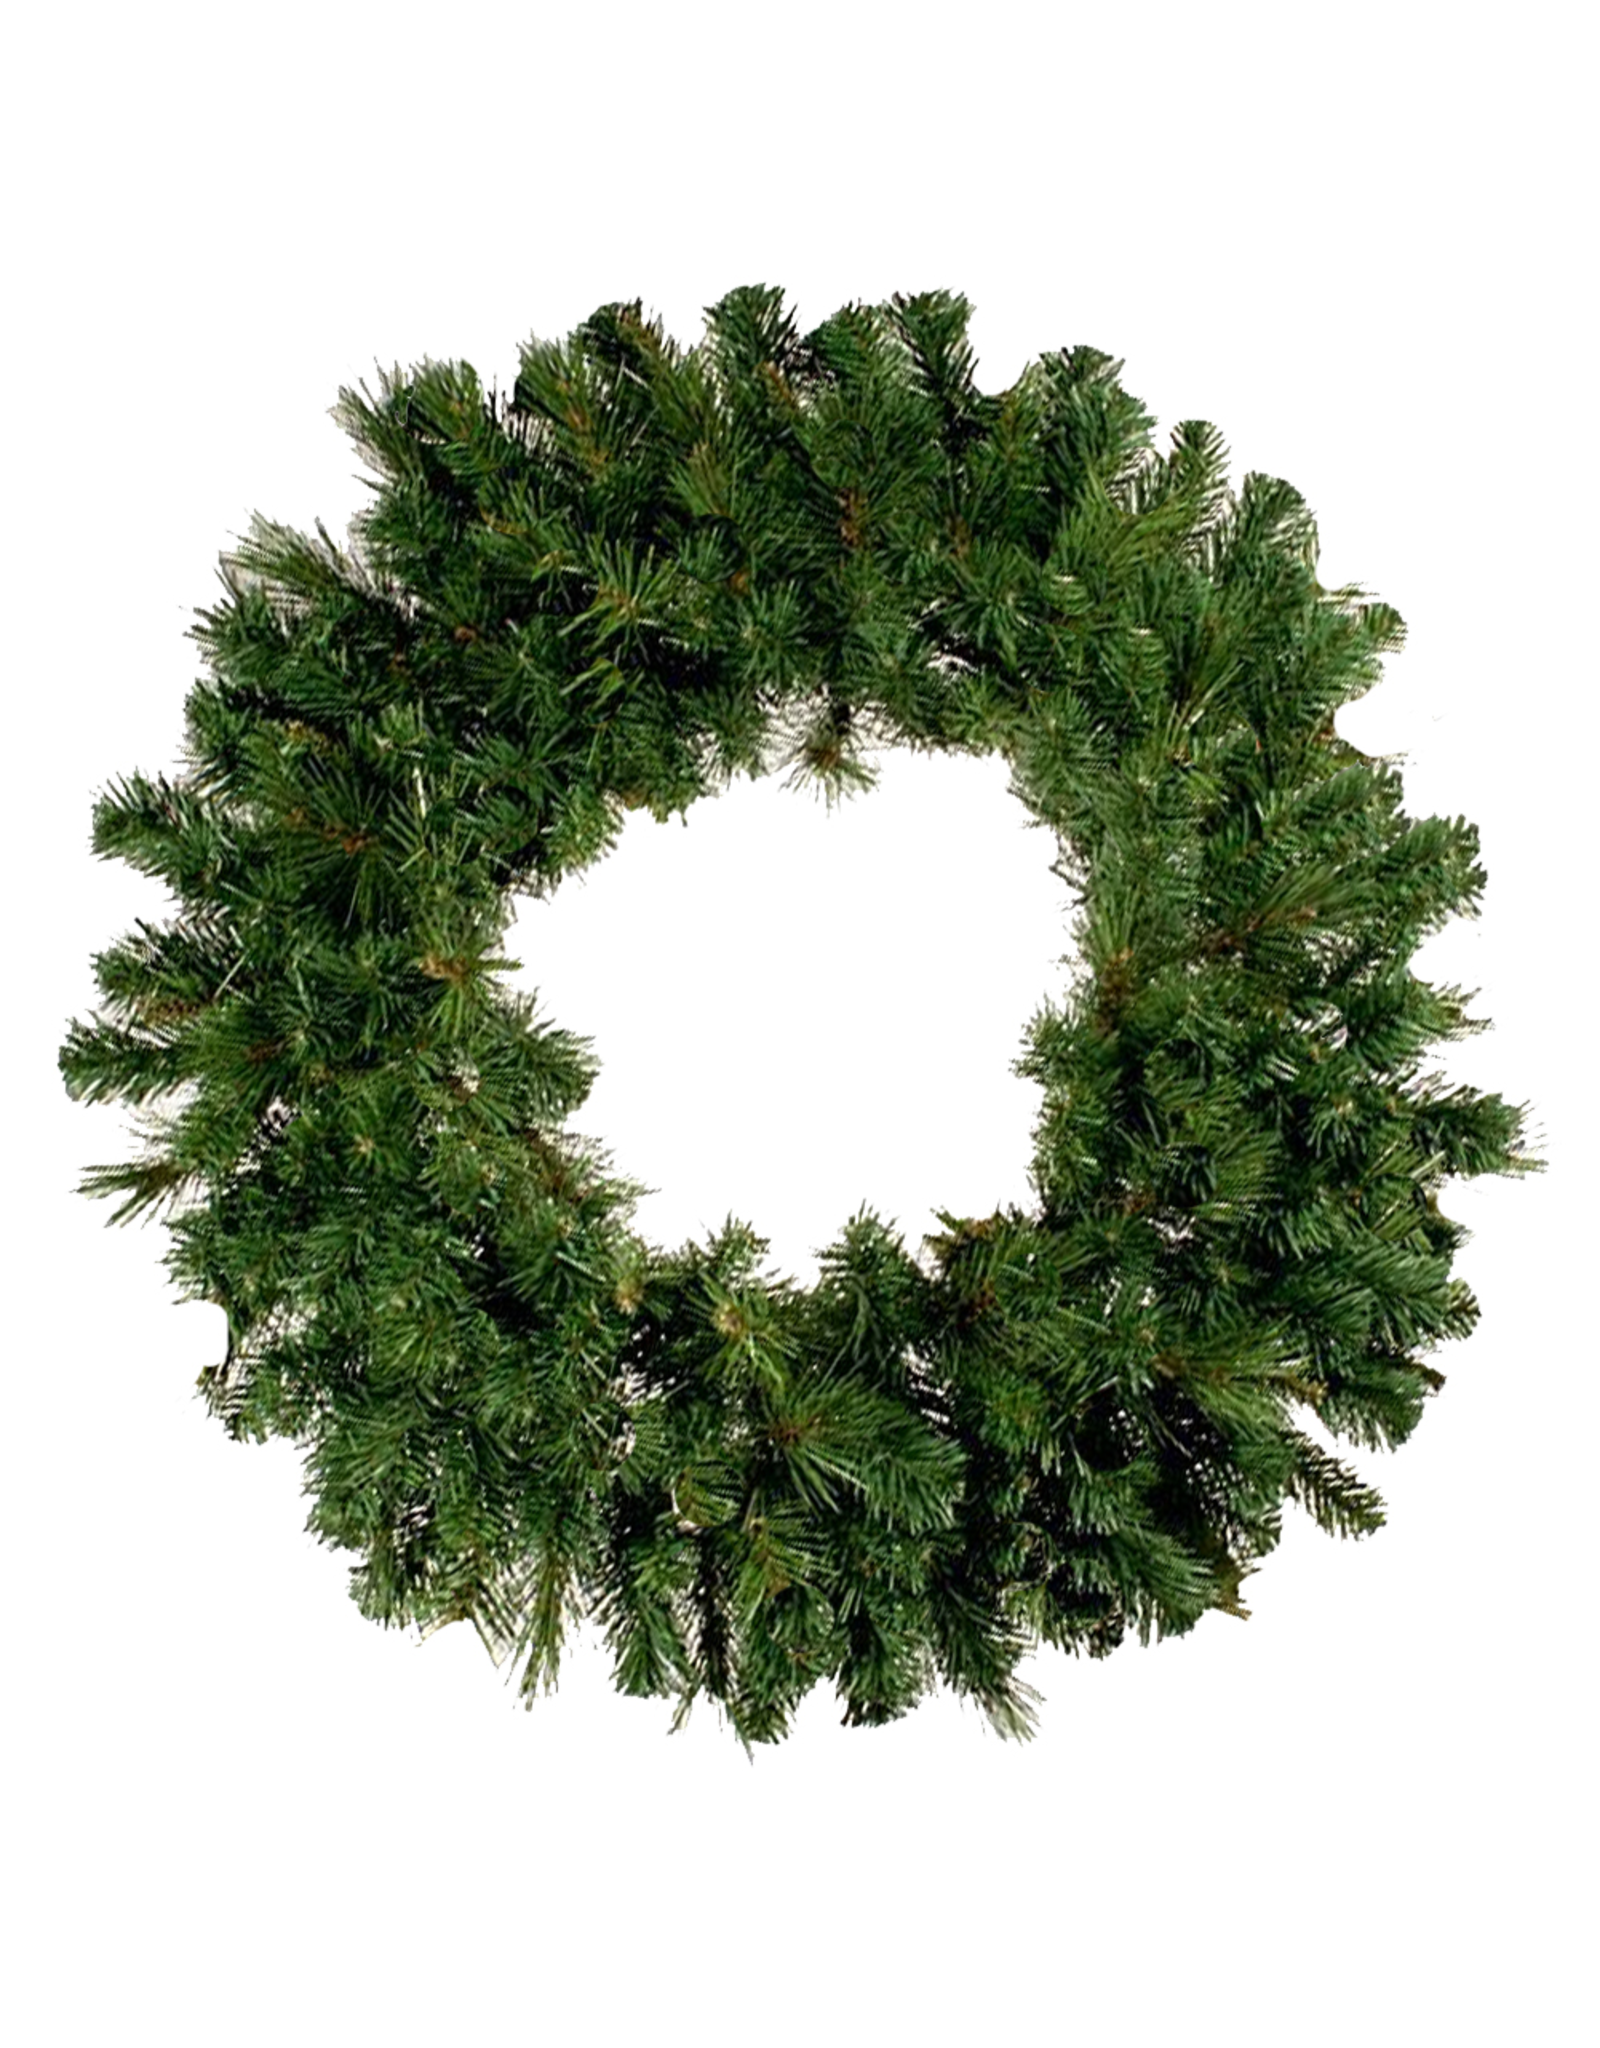 Darice Christmas Wreath 24 Inch Mixed Pine Wreath Holiday Decor Digs N Gifts